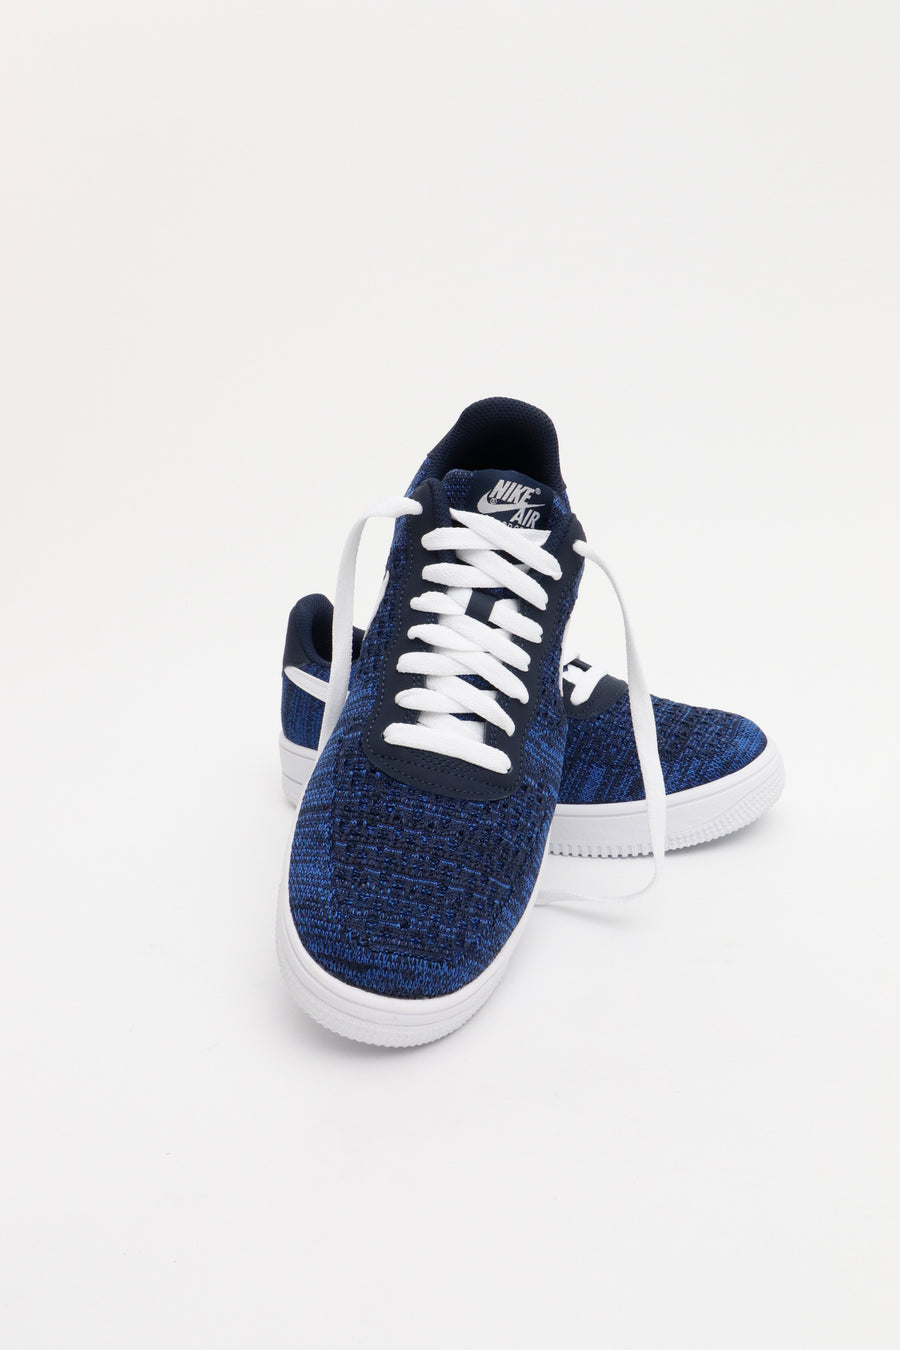 Nike - Air Force 1 Flyknit 2.0 (college navy/white-obsidian) AV3042-400